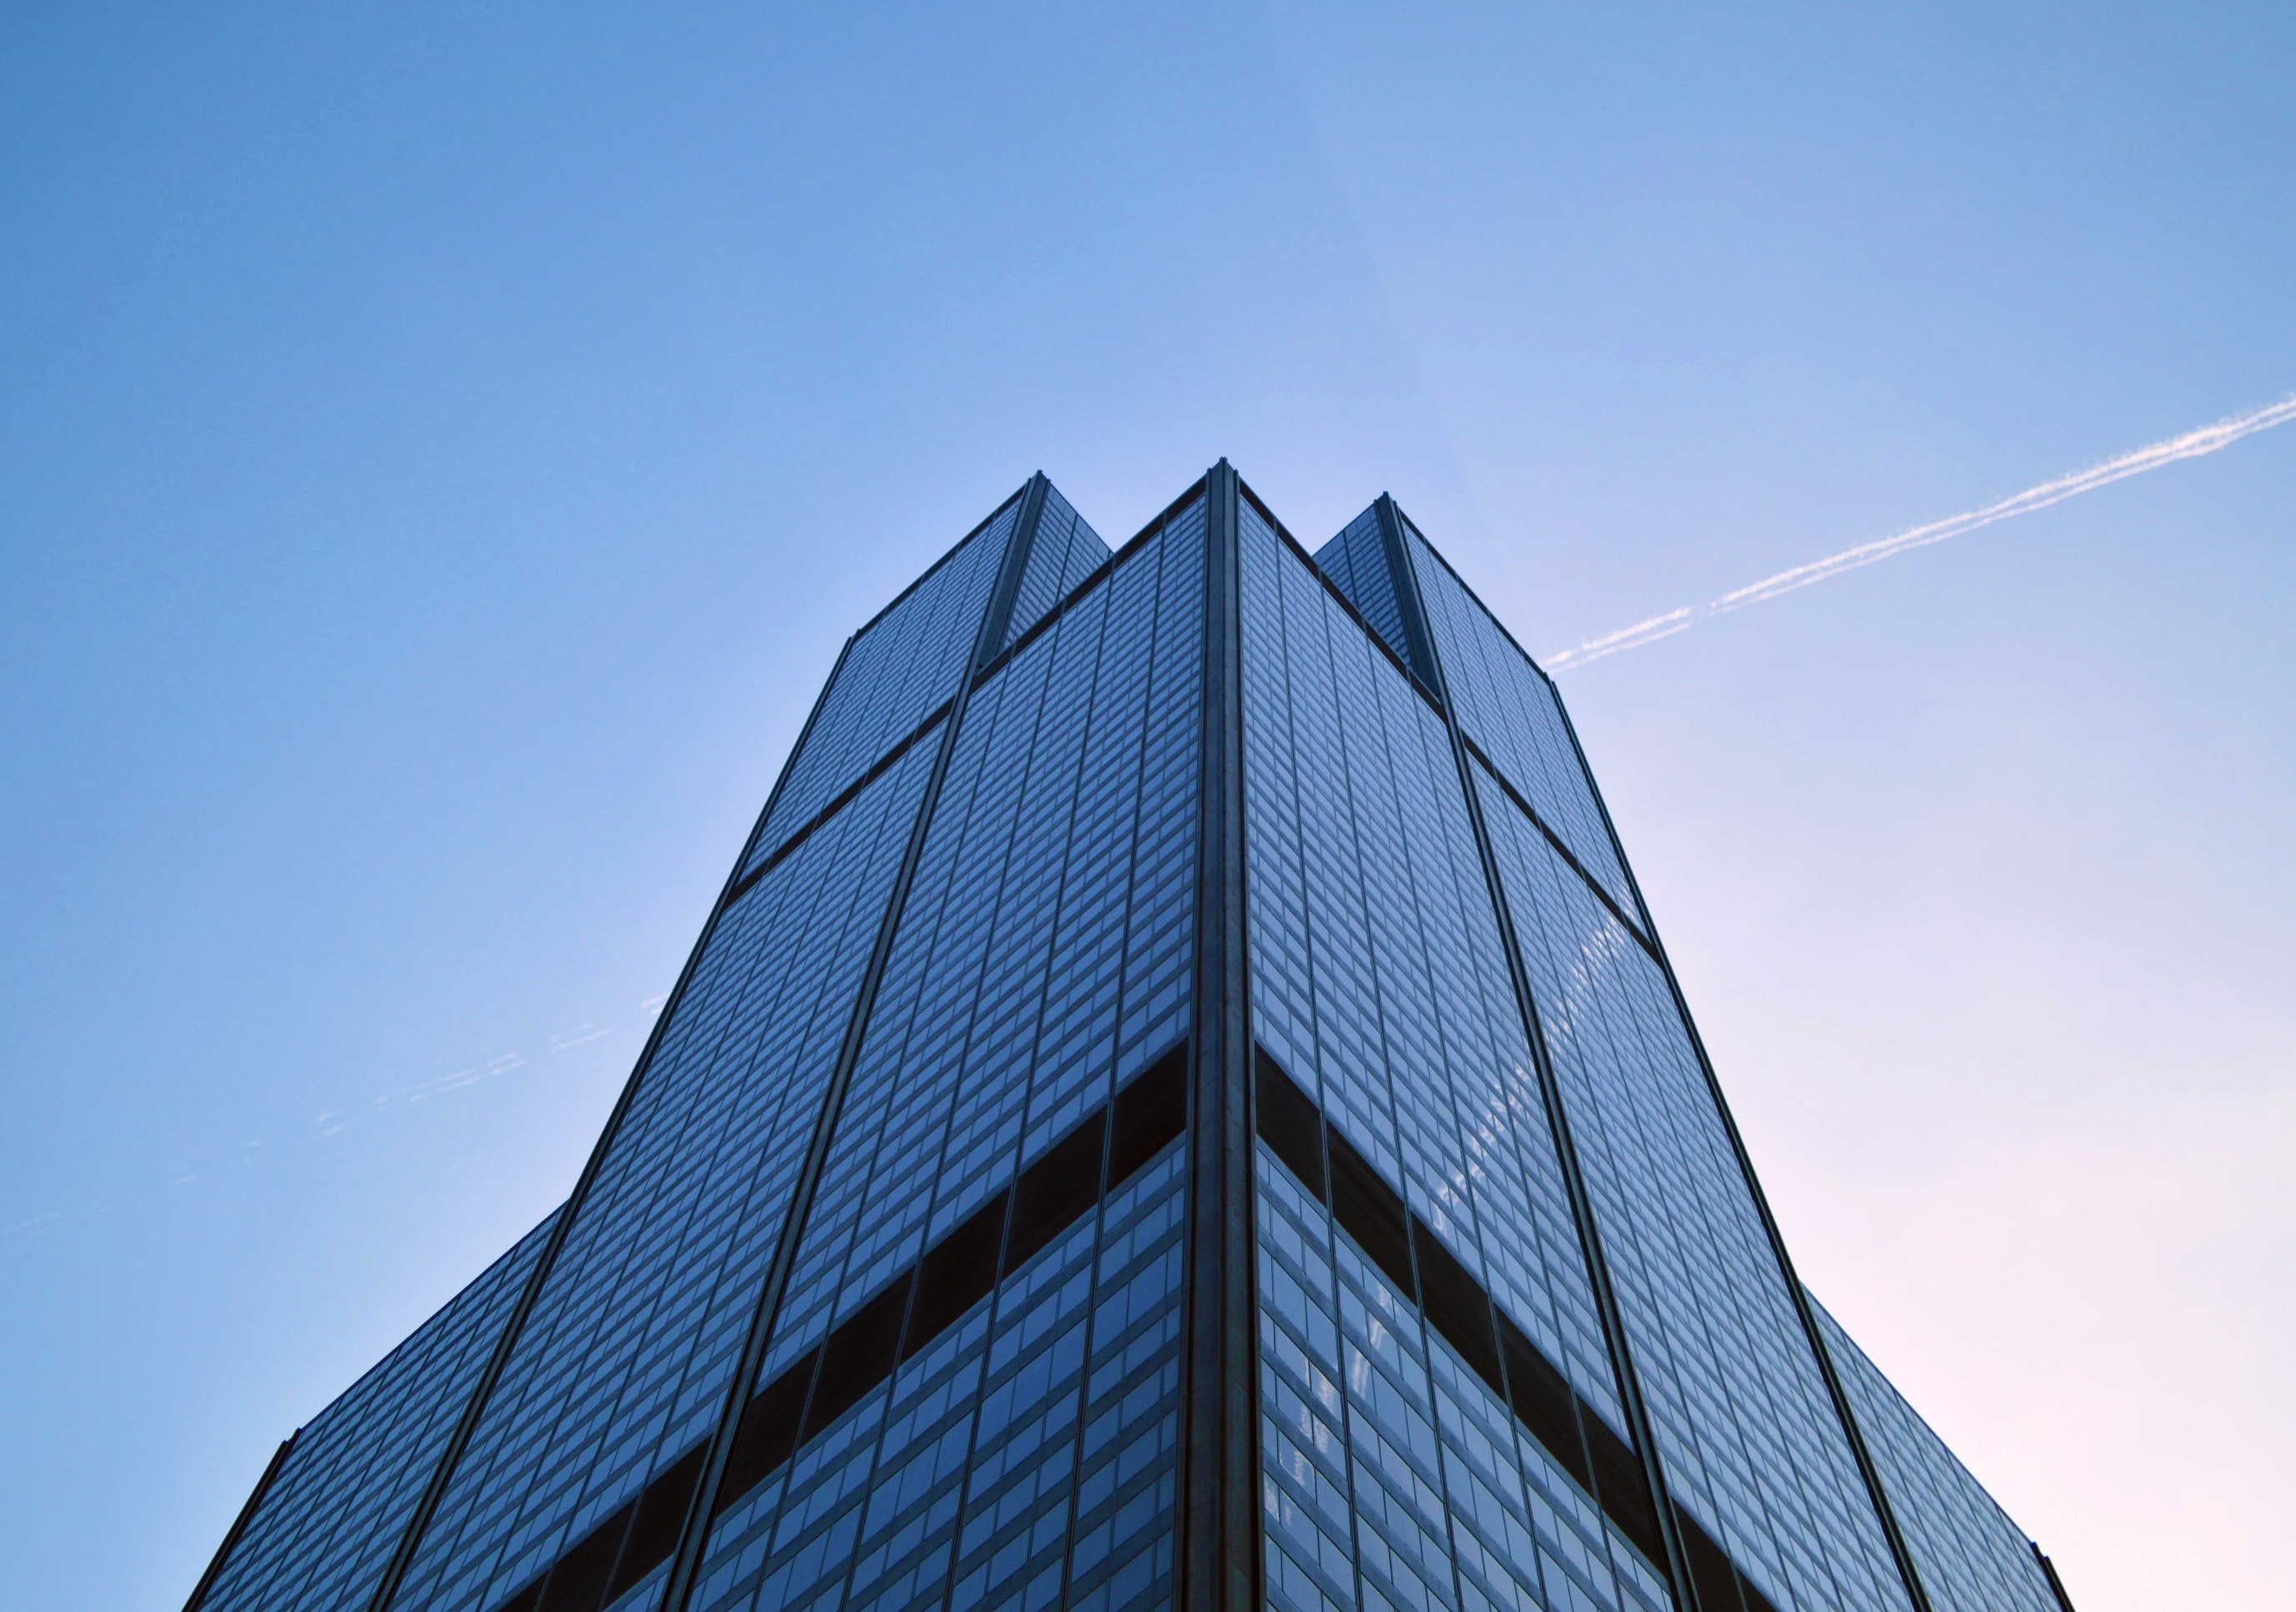 Low Angle Photography Of High Rise Building 183 Free Stock Photo